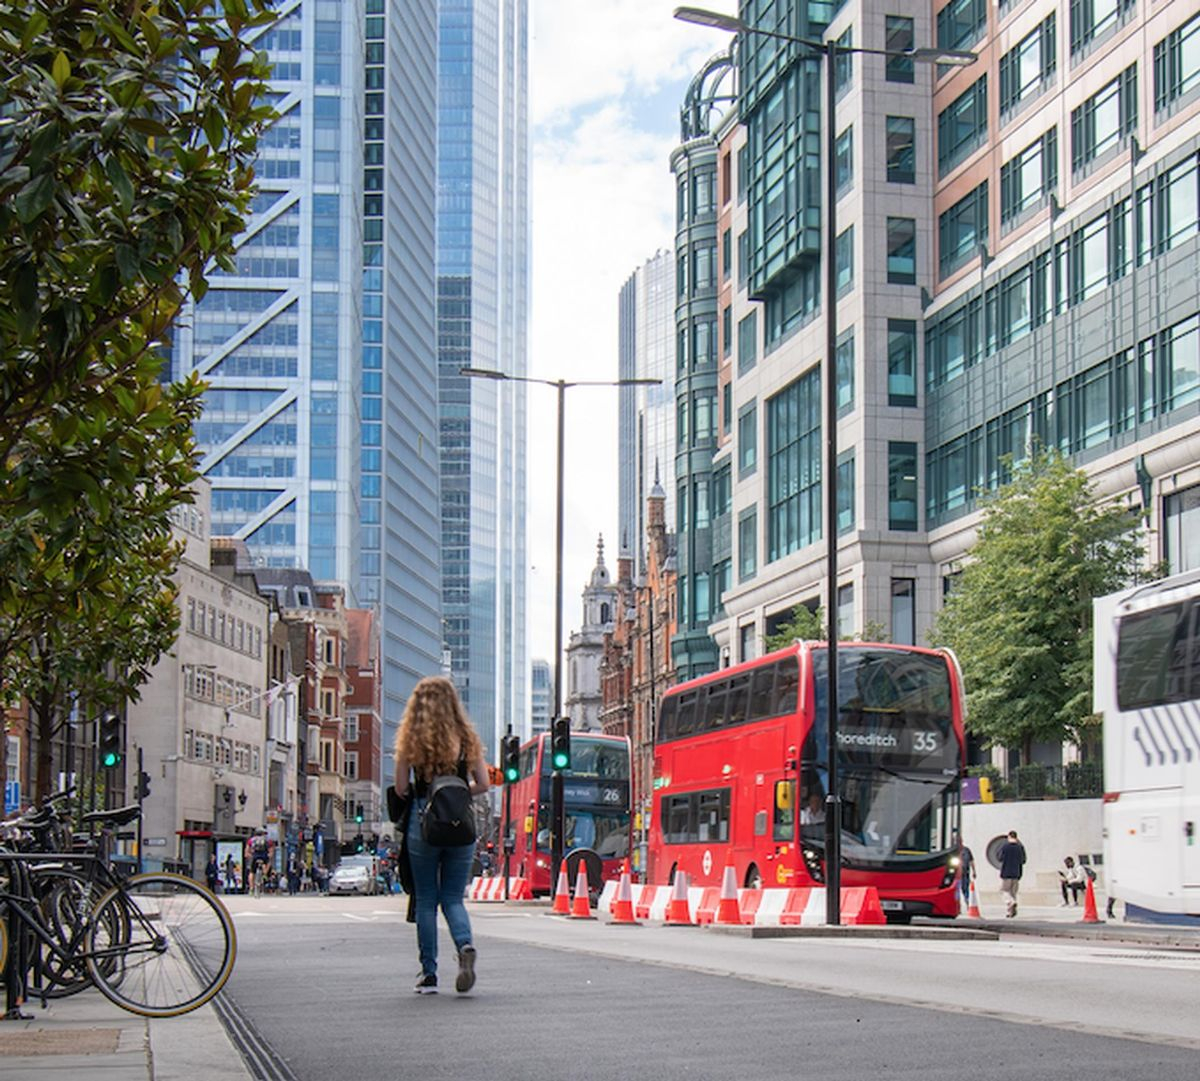 The temporary restrictions on Bishopsgate and Gracechurch Street in the City of London are a key part of the Mayor of London and TfL's world-leading Streetspace plans